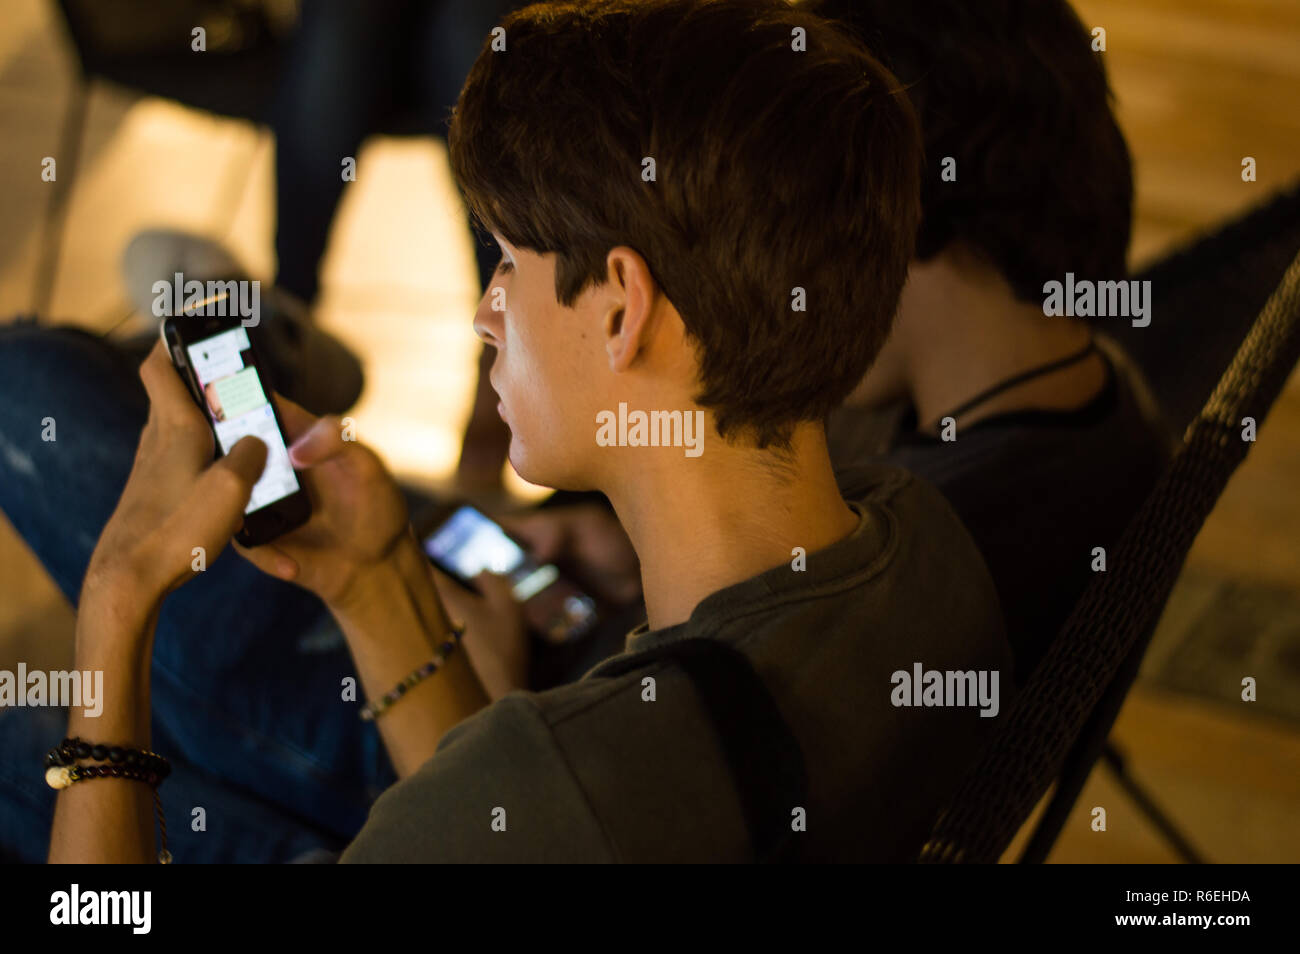 Engrossed teens scrolling through their mobile phones, ignoring each other - Stock Image